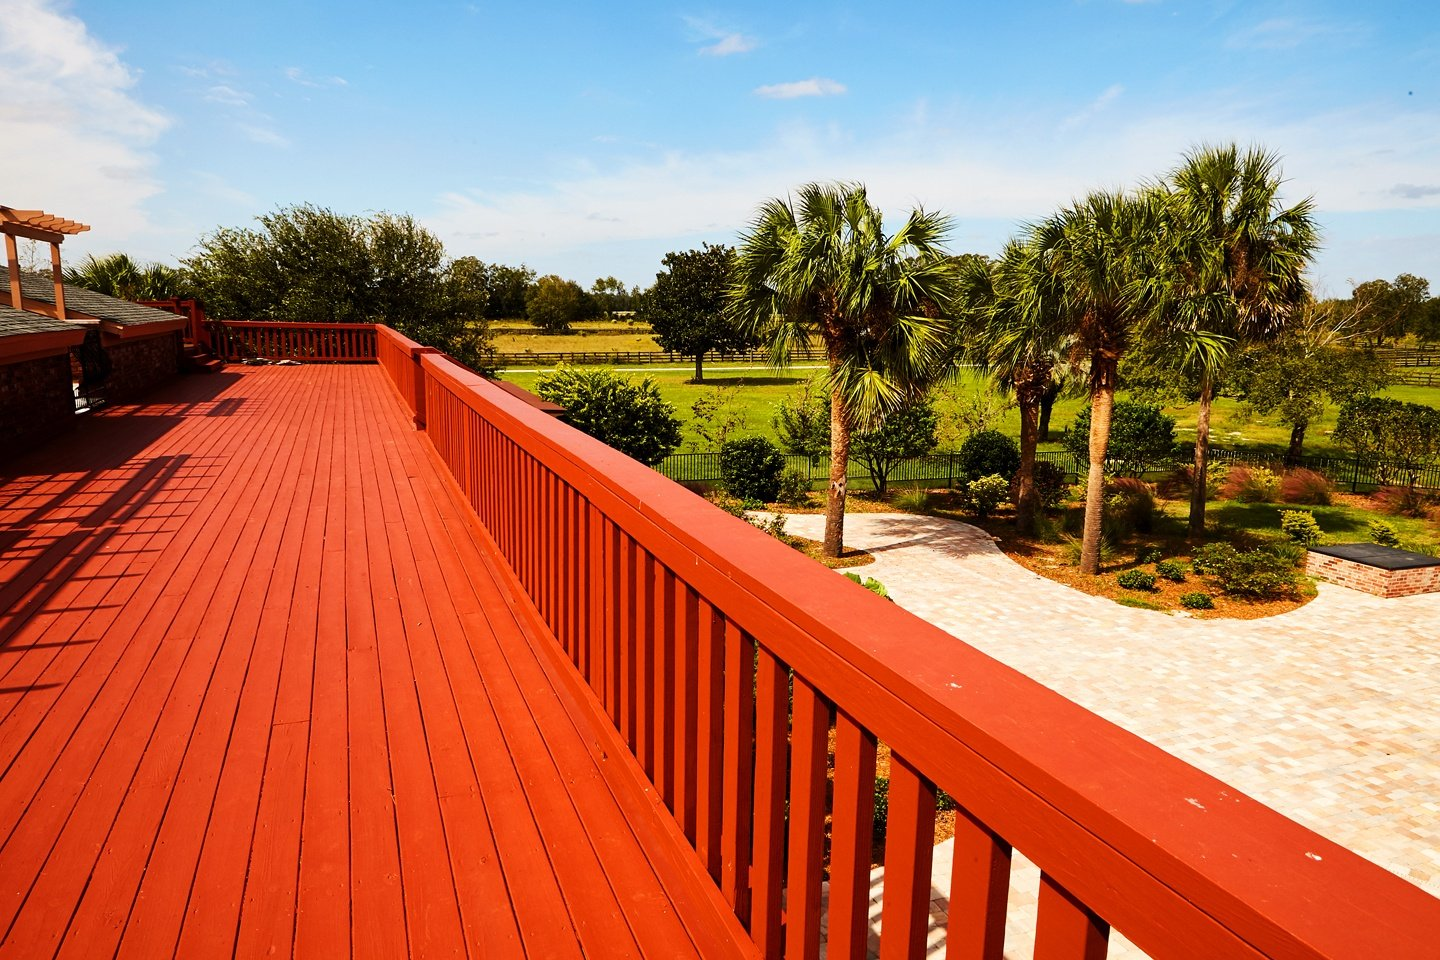 Red Wooden Deck